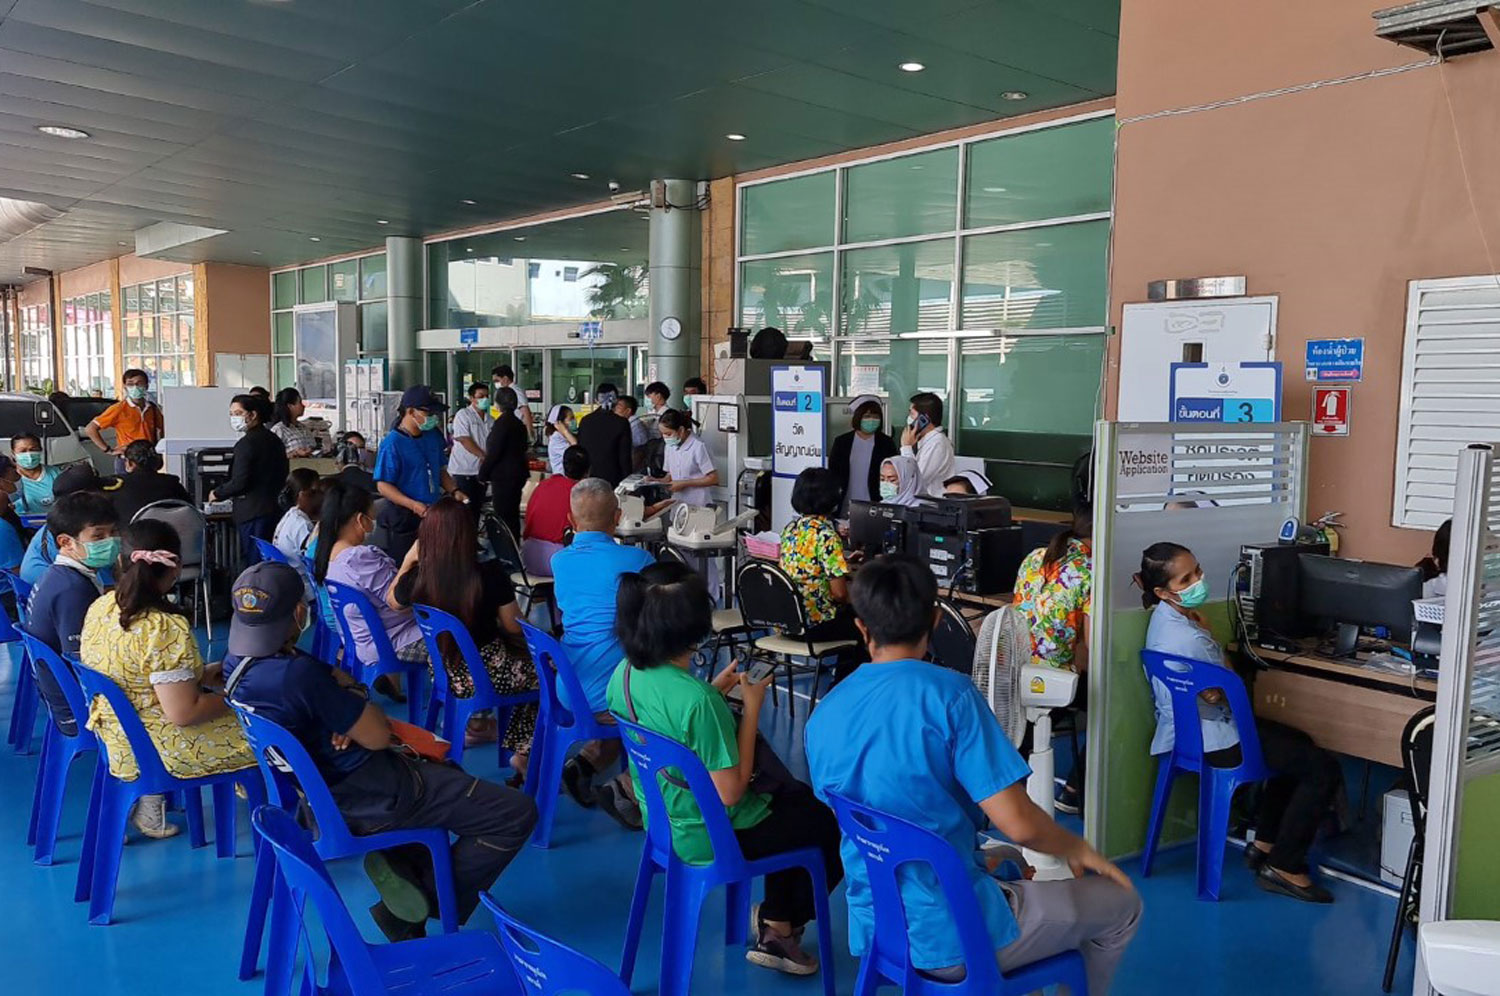 People wait their turn for Covid-19 vaccination at Pattaya City Hospital on Friday. (Photo: Chaiyot Pupattanapong)